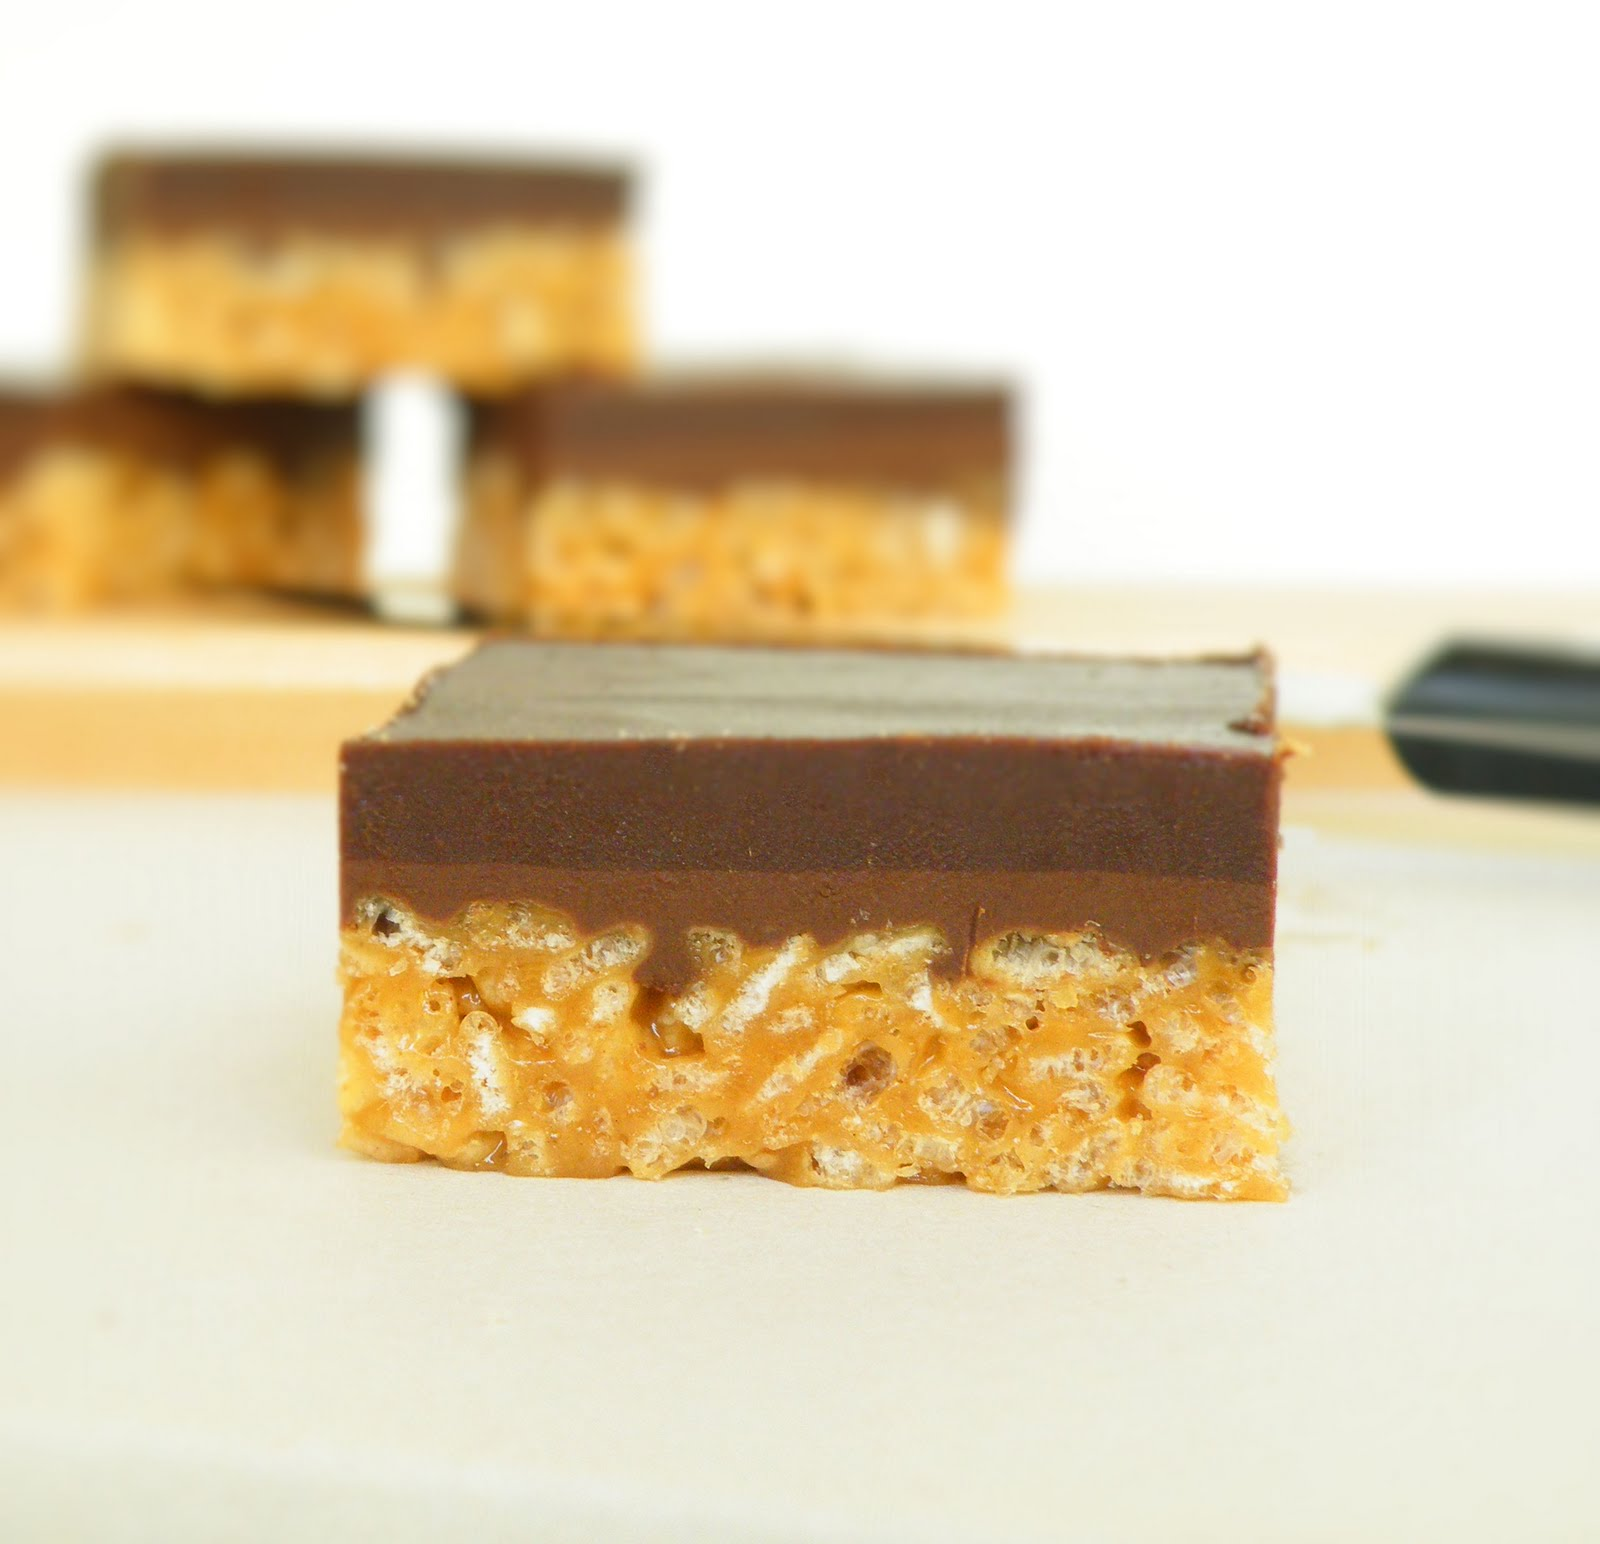 Vittles and Bits: Crispy Peanut Butter Nutella Bars